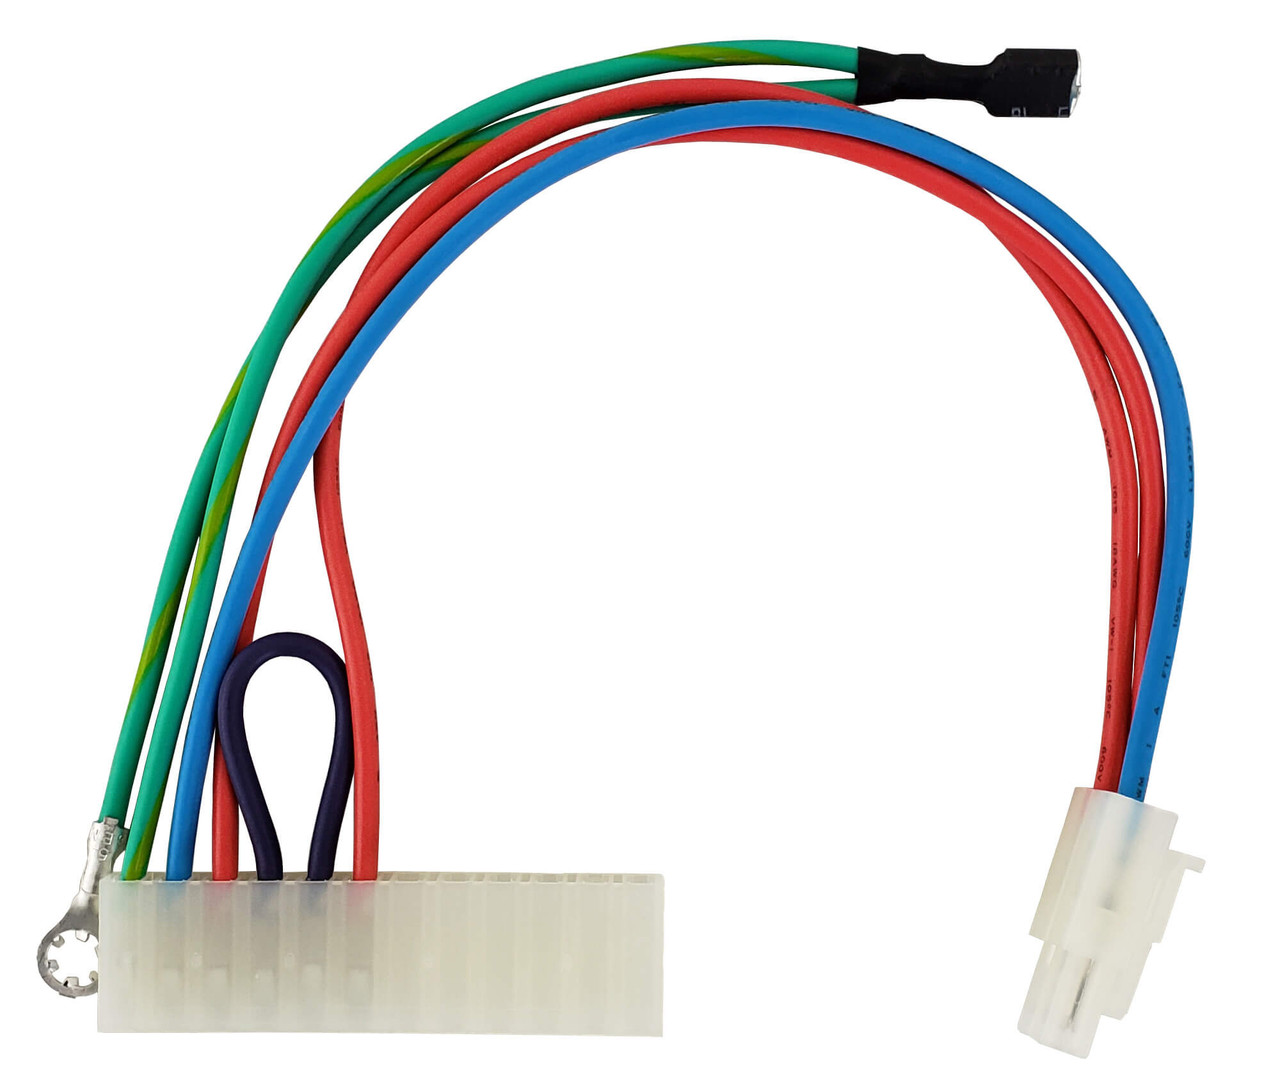 Honeywell Control Wiring for Bromic Gas Heaters